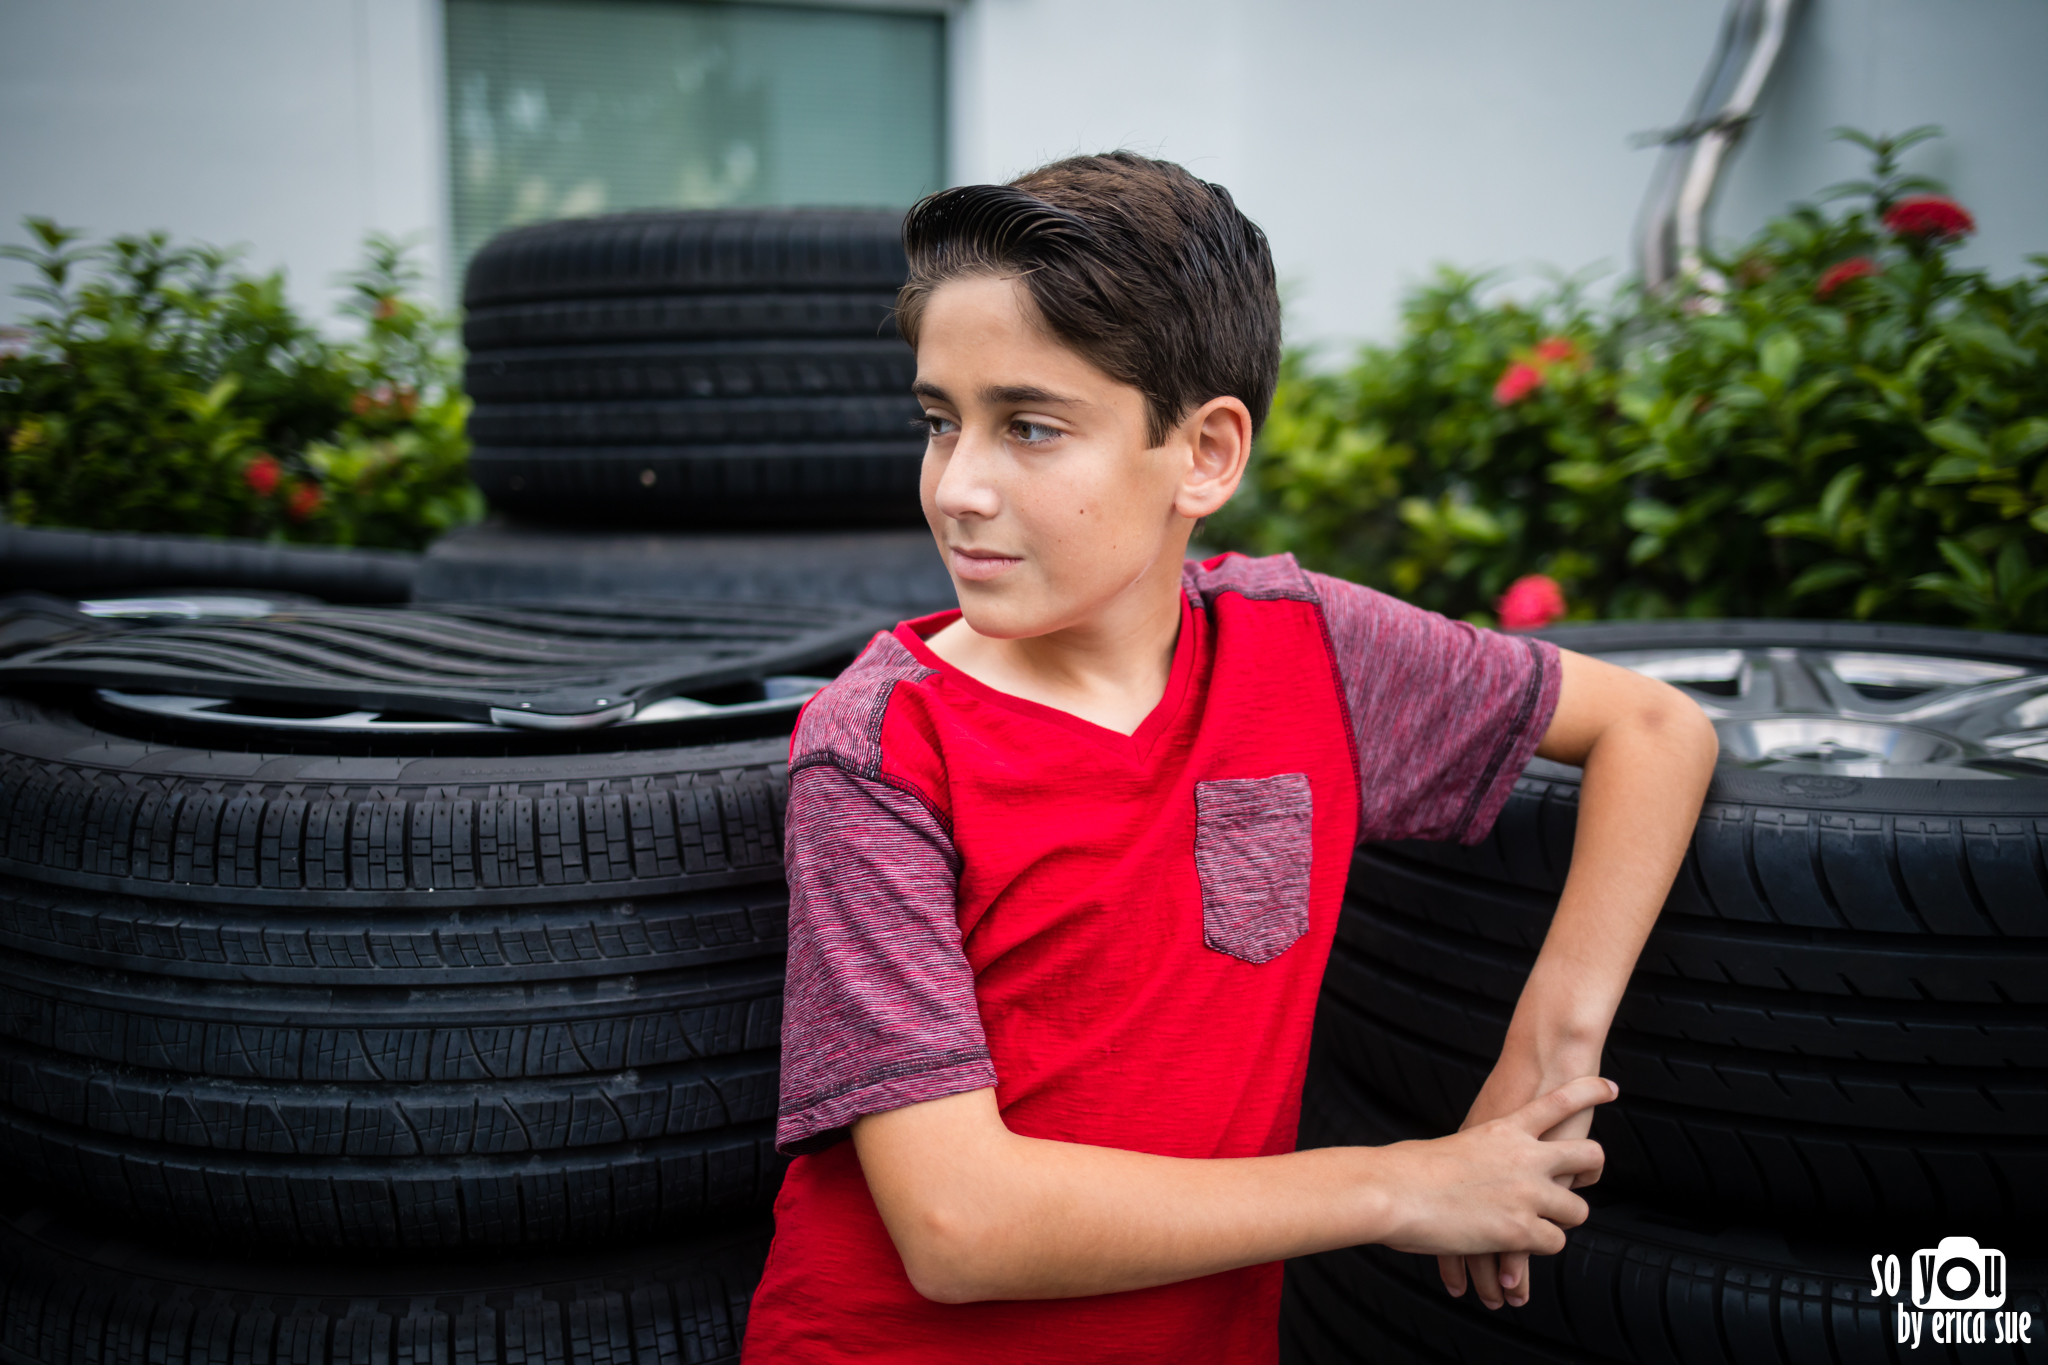 so-you-by-erica-sue-mitzvah-photographer-collection-luxury-car-ft-lauderdale-4931.jpg